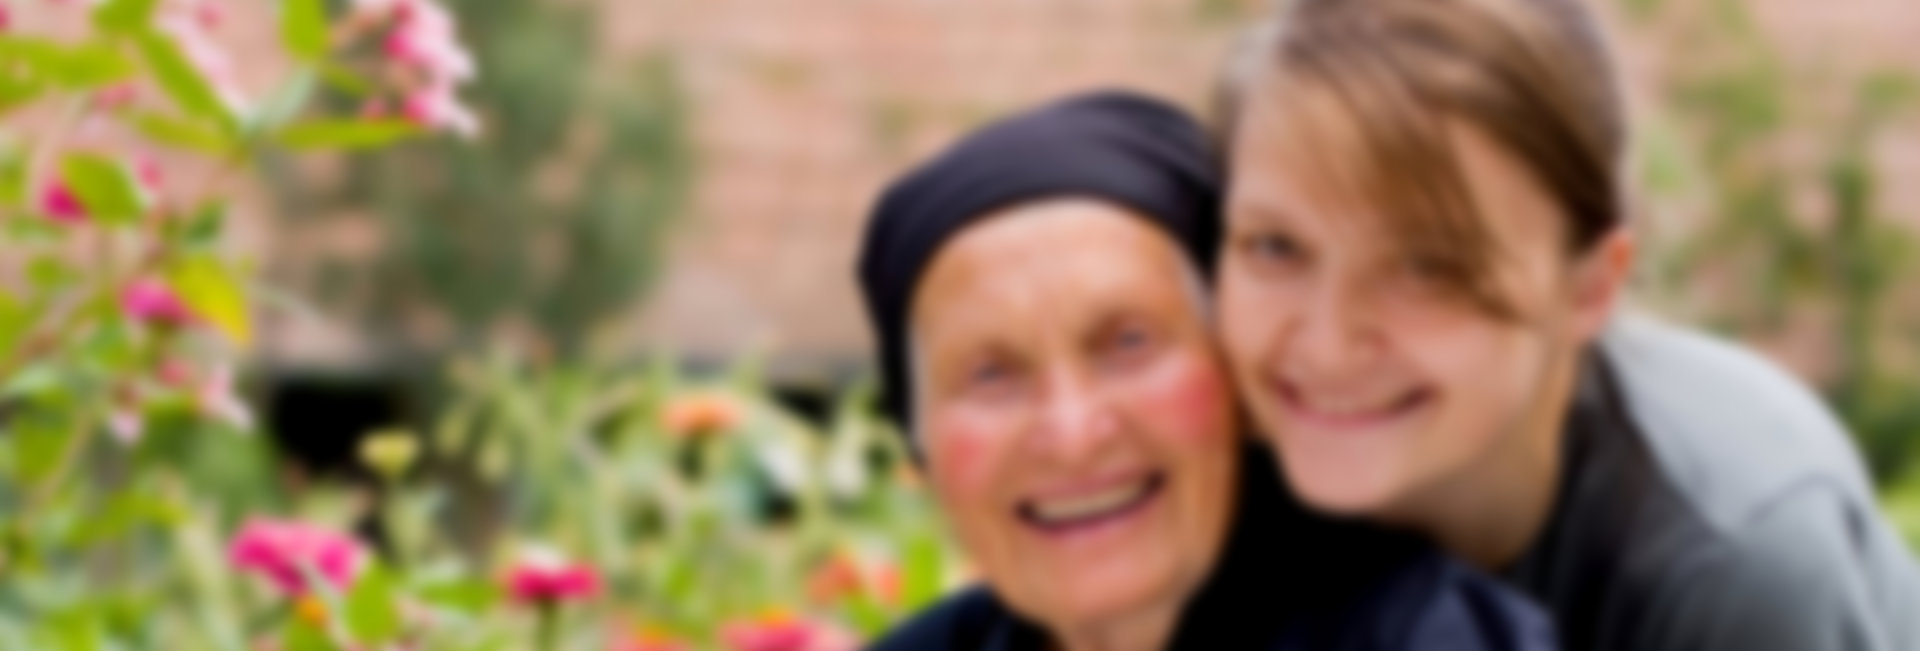 Caregiver is smiling together with her patient